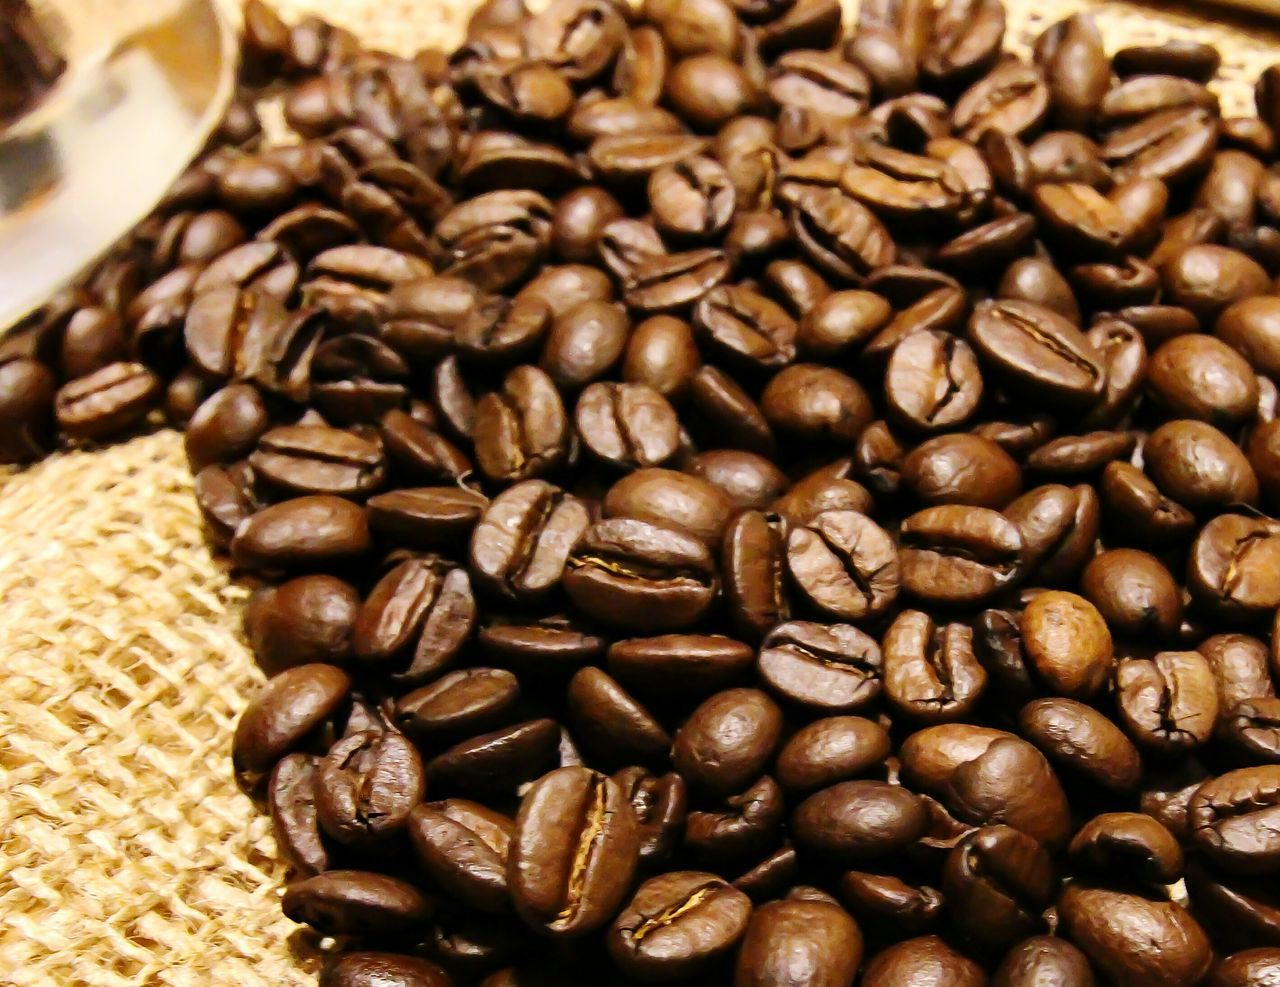 Coffee Seeds Kaffeebohnen Wallpaper This Week On Eyeem Showcase: February Closeupshot